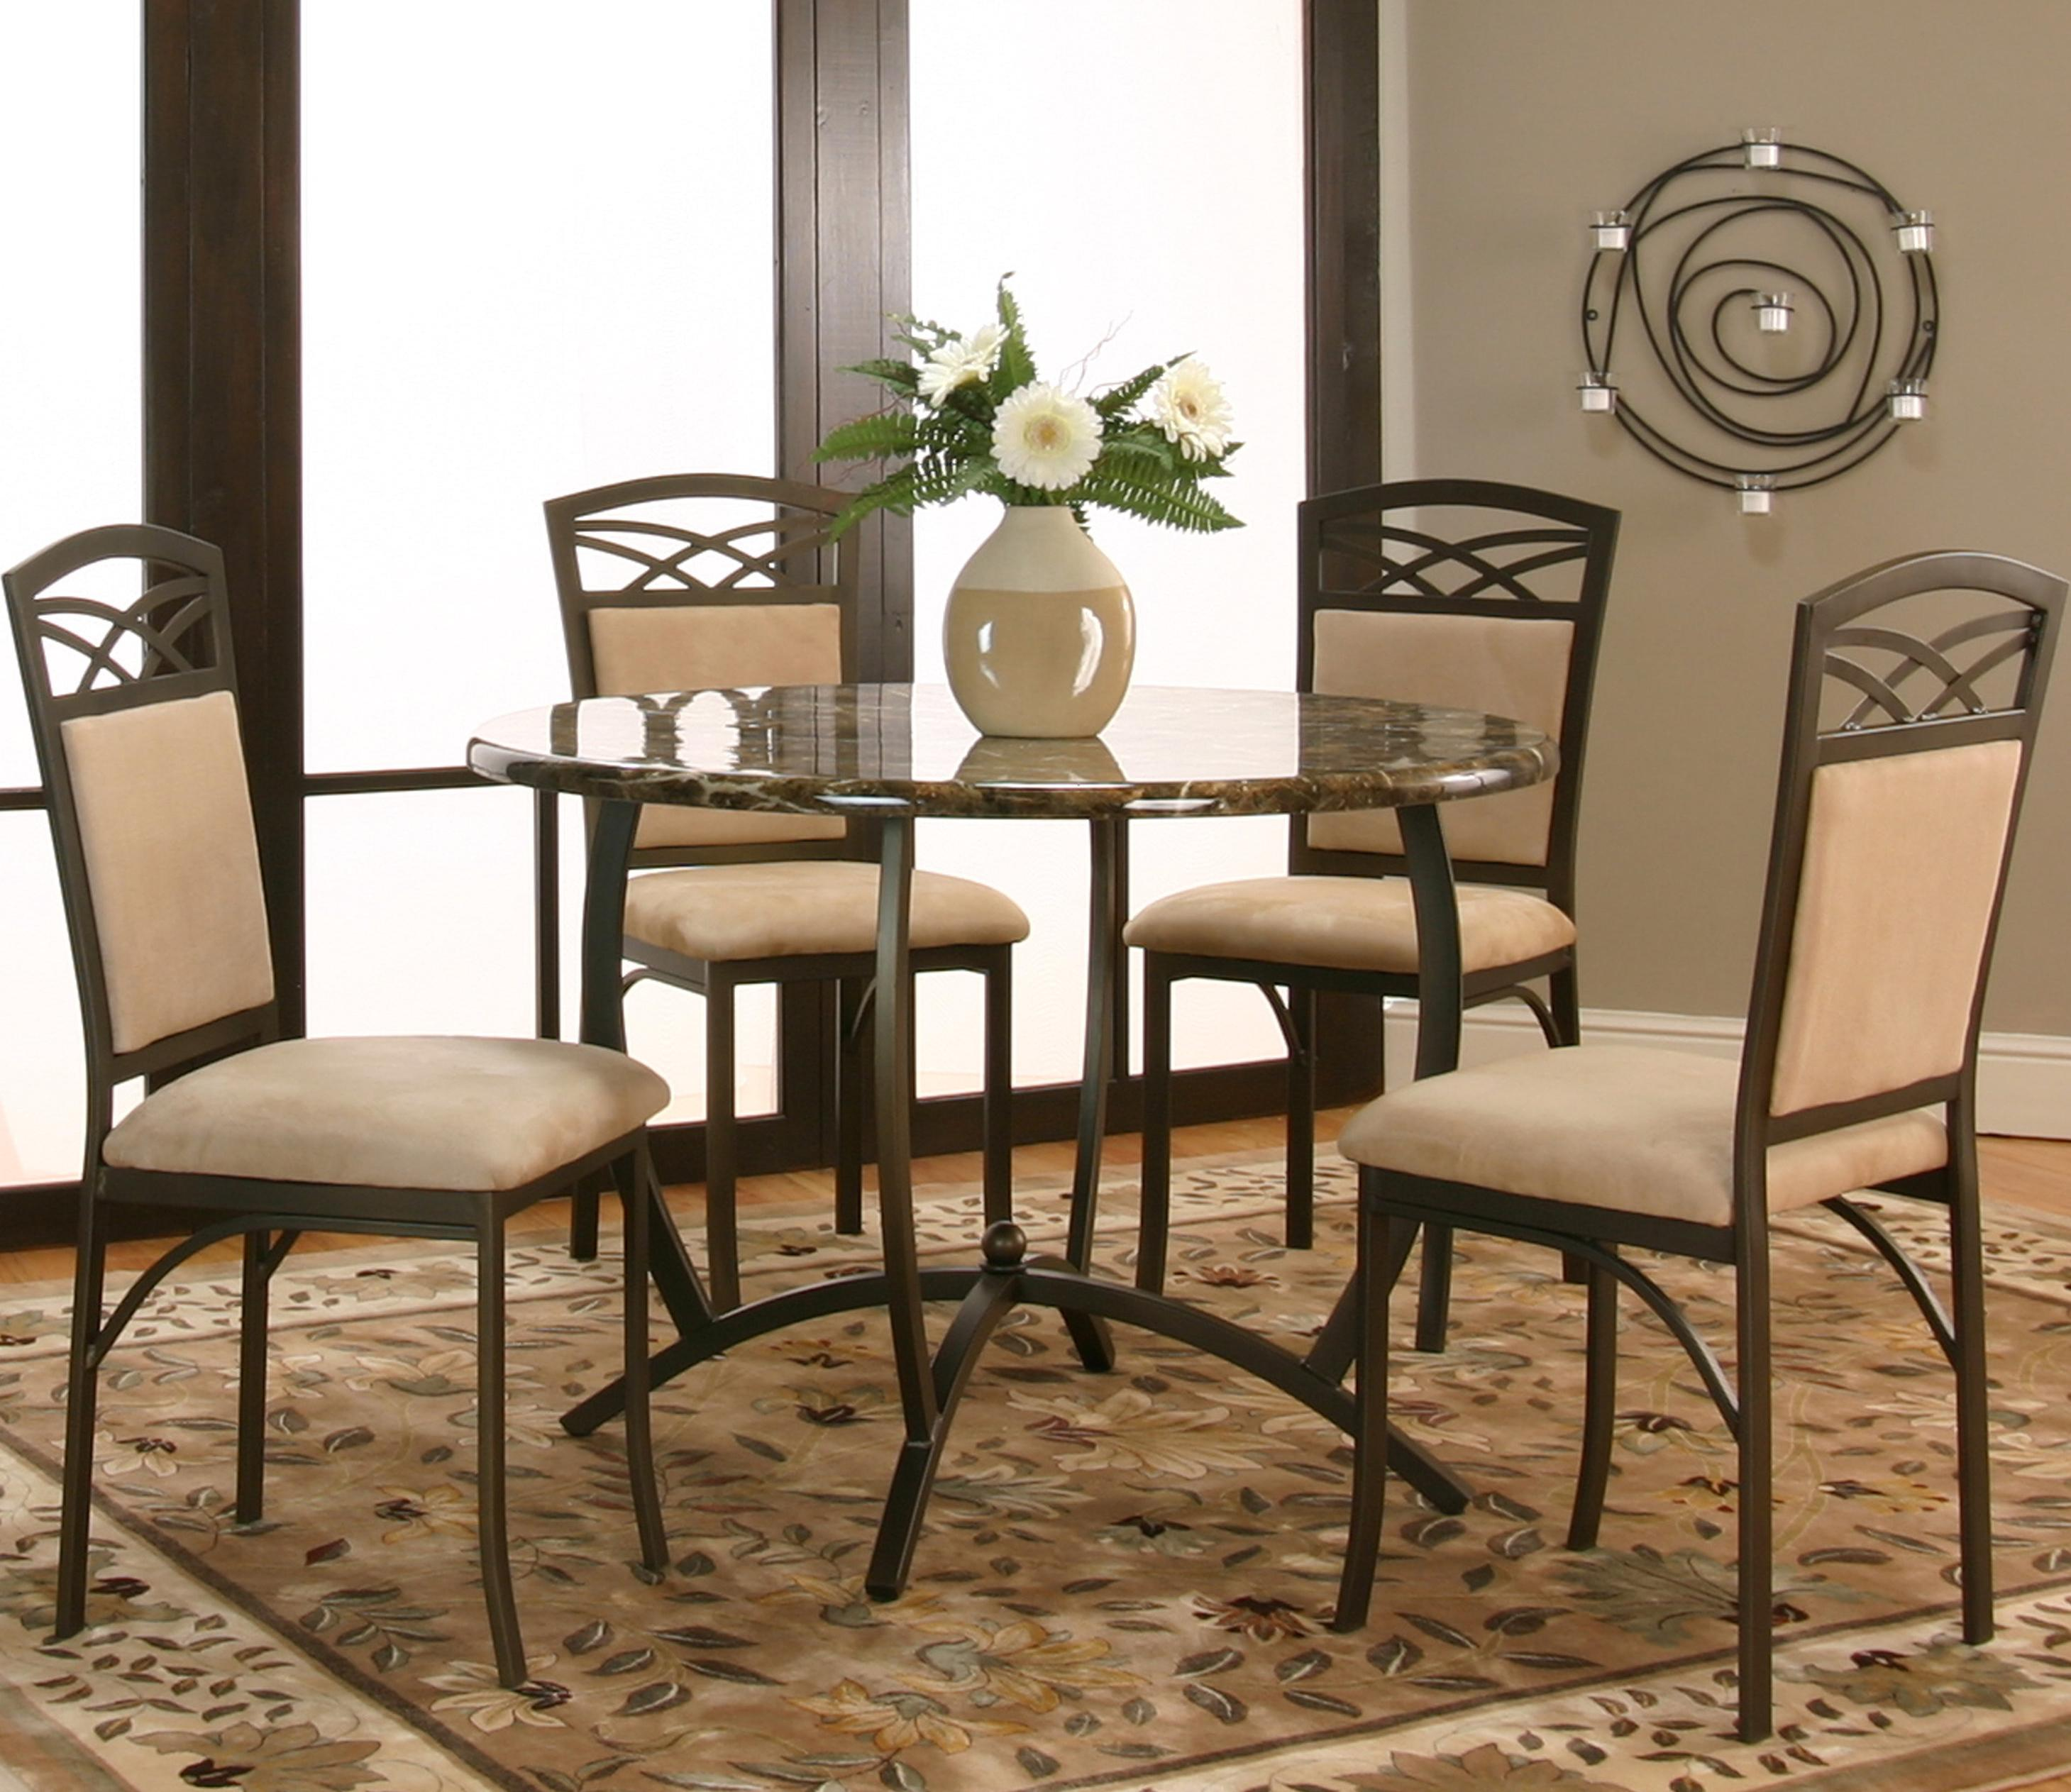 Dining room table for 4